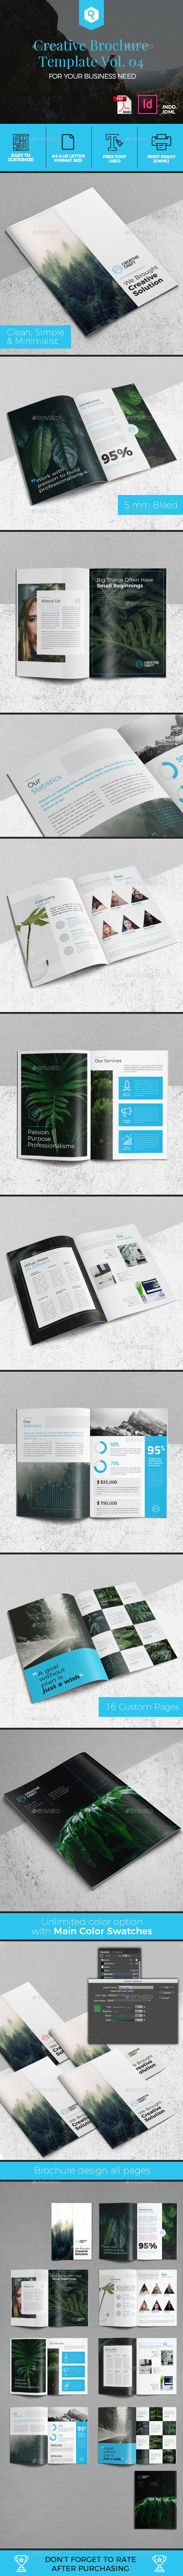 Creative Brochure Template InDesign INDD